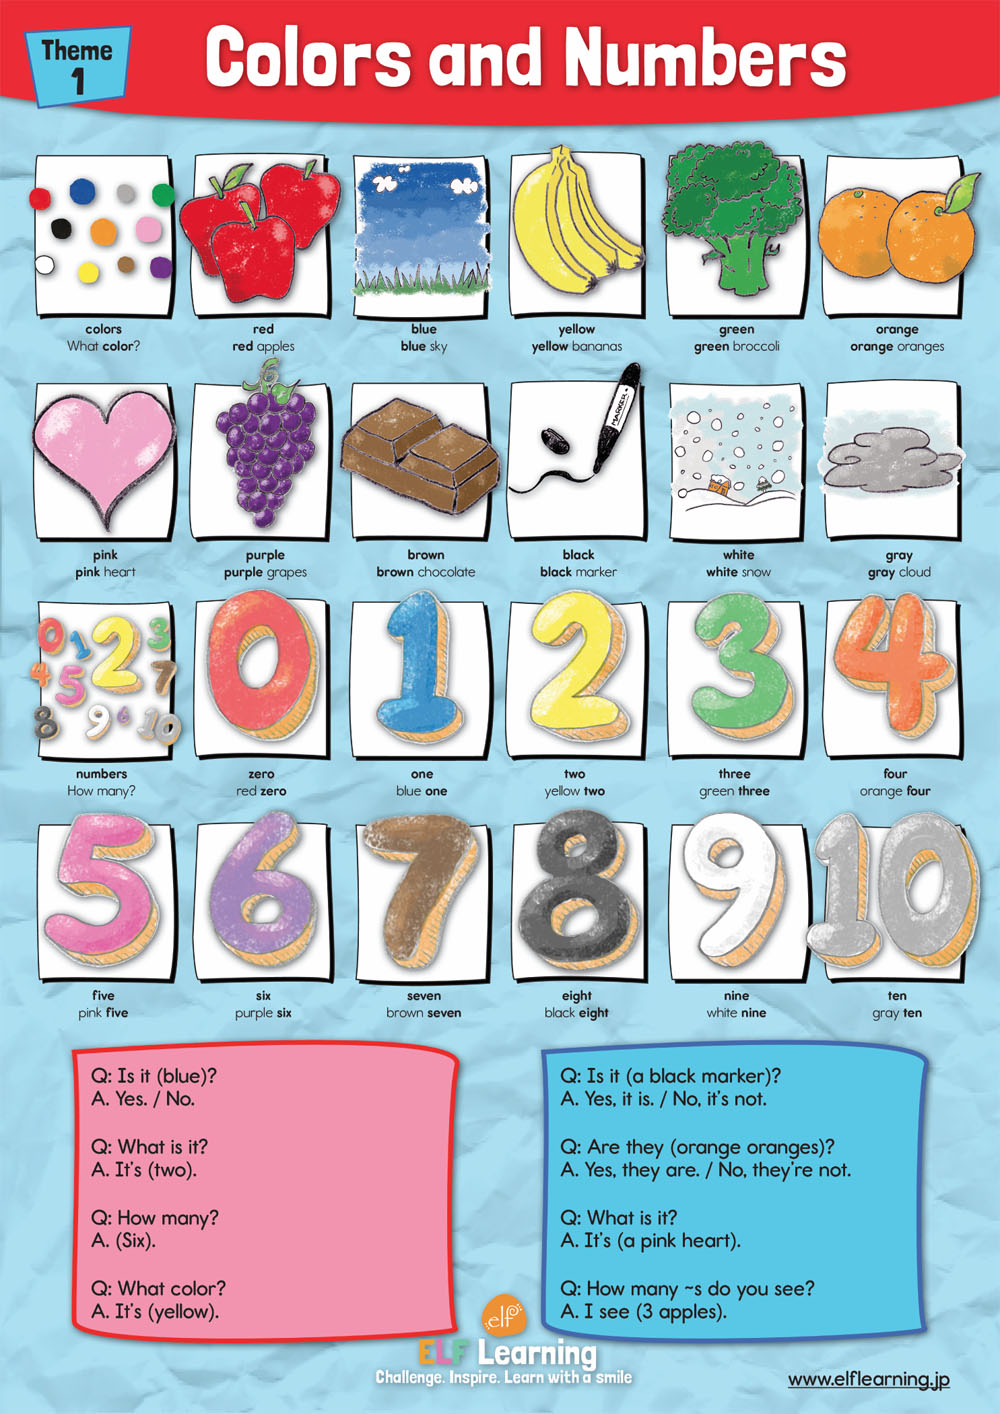 1 - Colors and Numbers Poster - ELF Learning